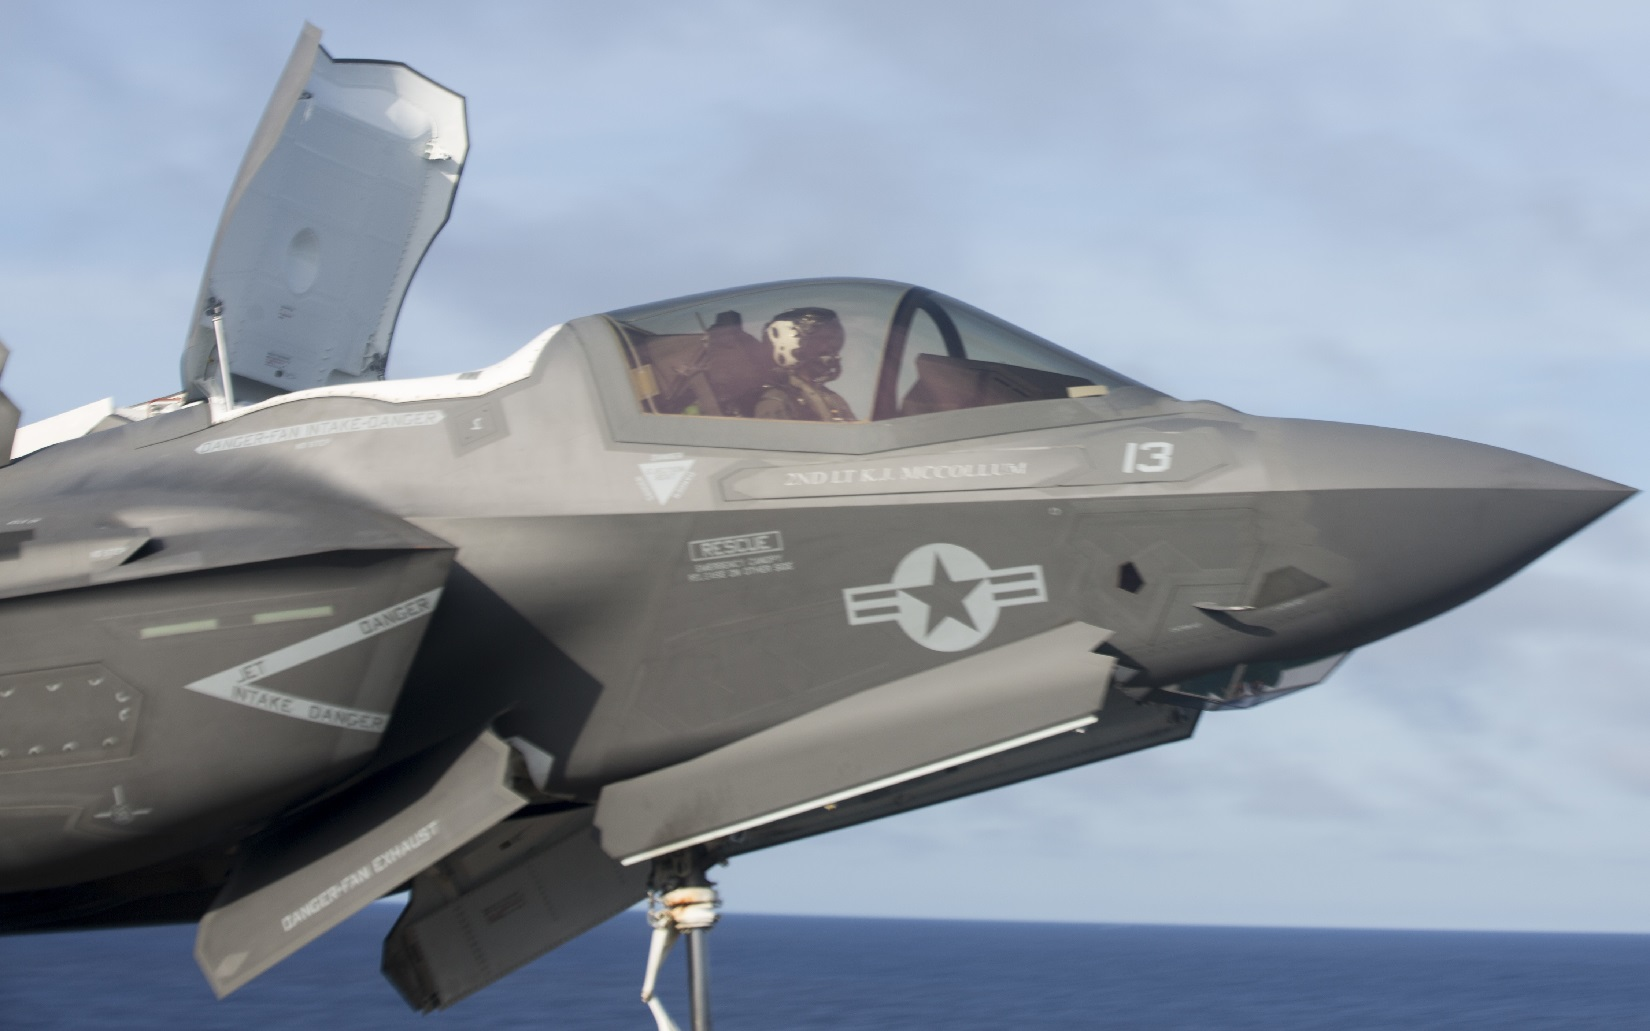 F-35s Are Flying Over Syria (Hint: They Aren't American)